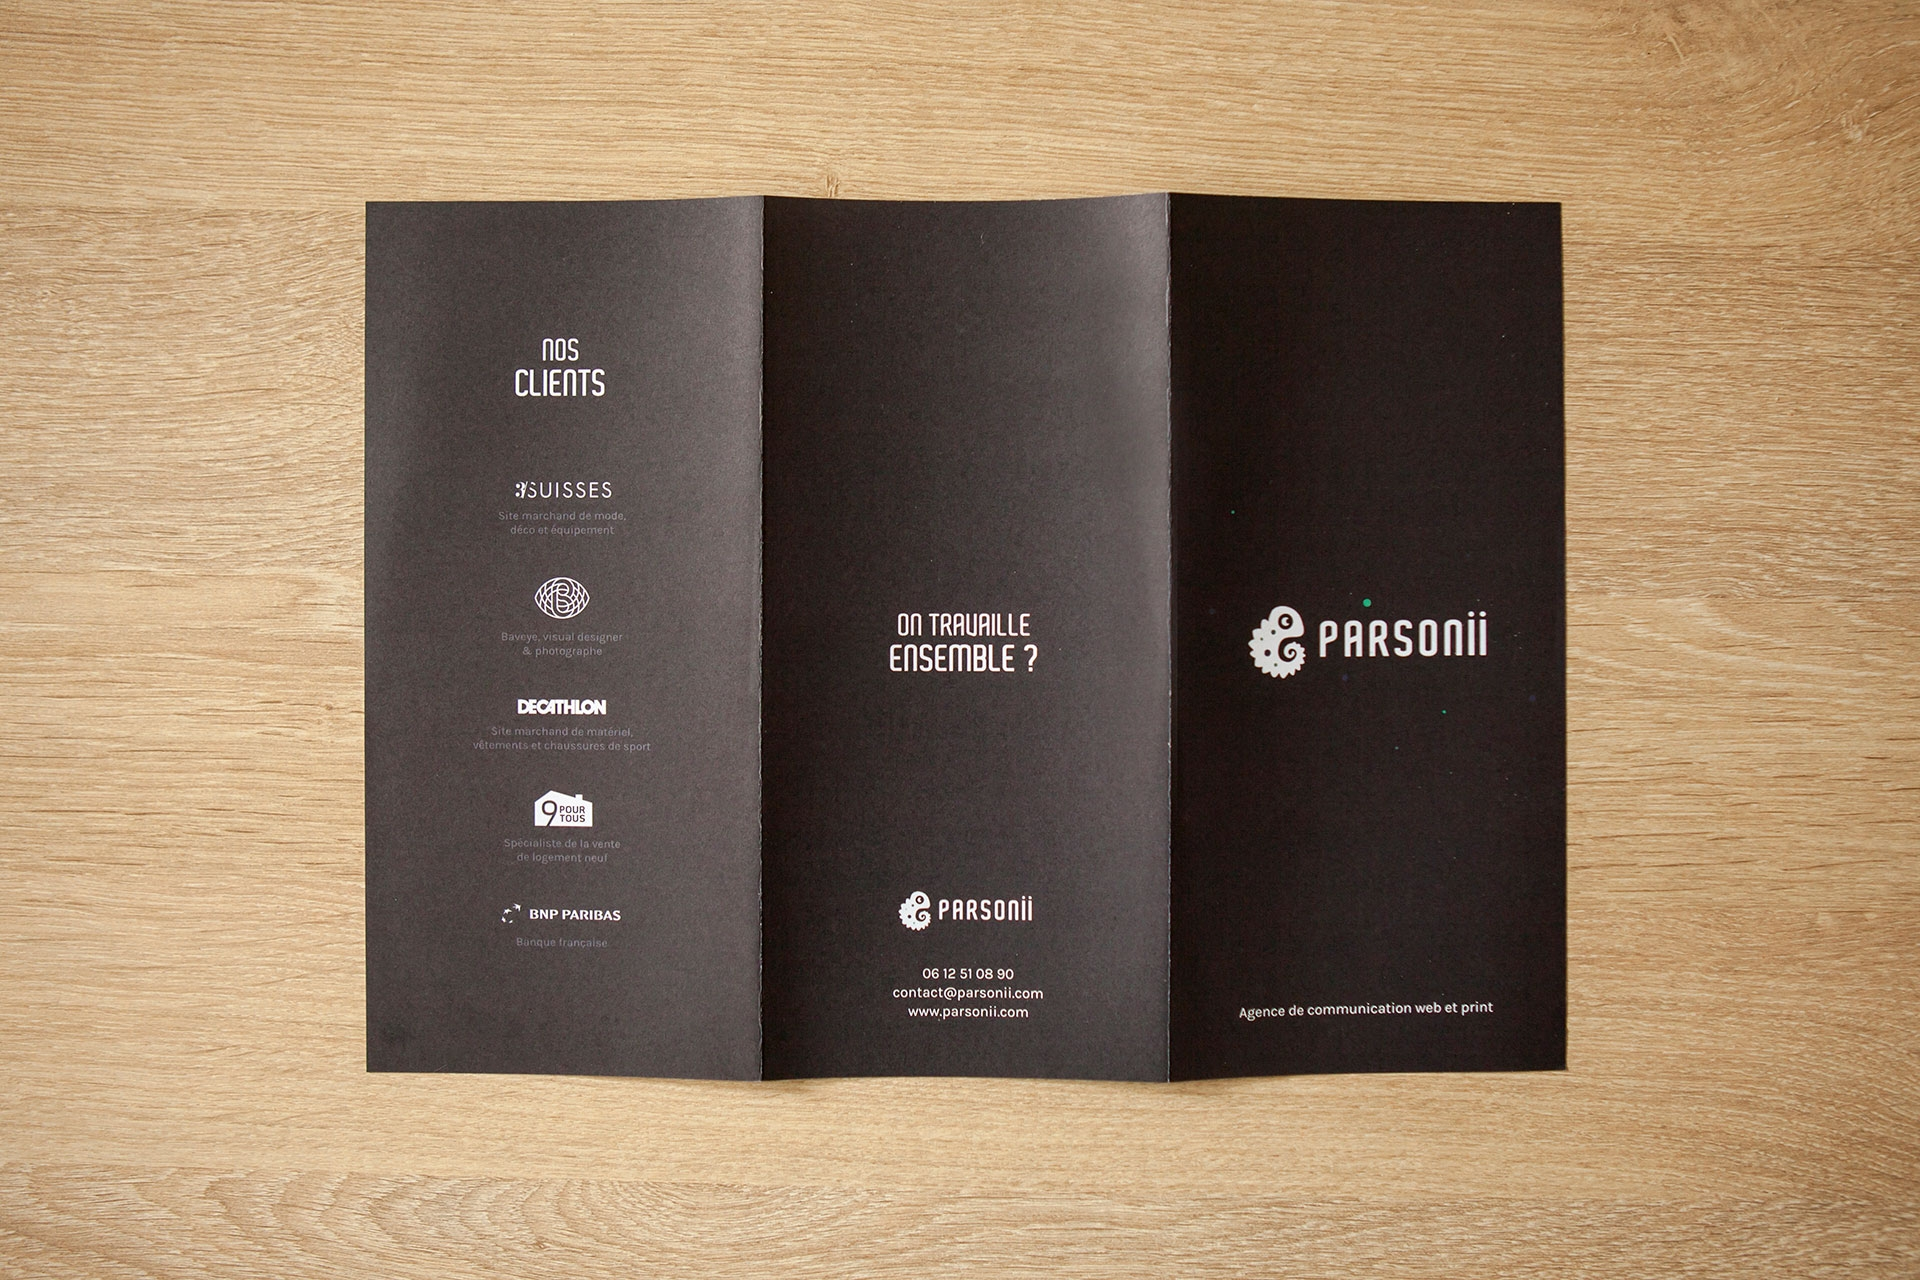 professionnels-print-supports-com-depliant-parsonii-pagetop-08